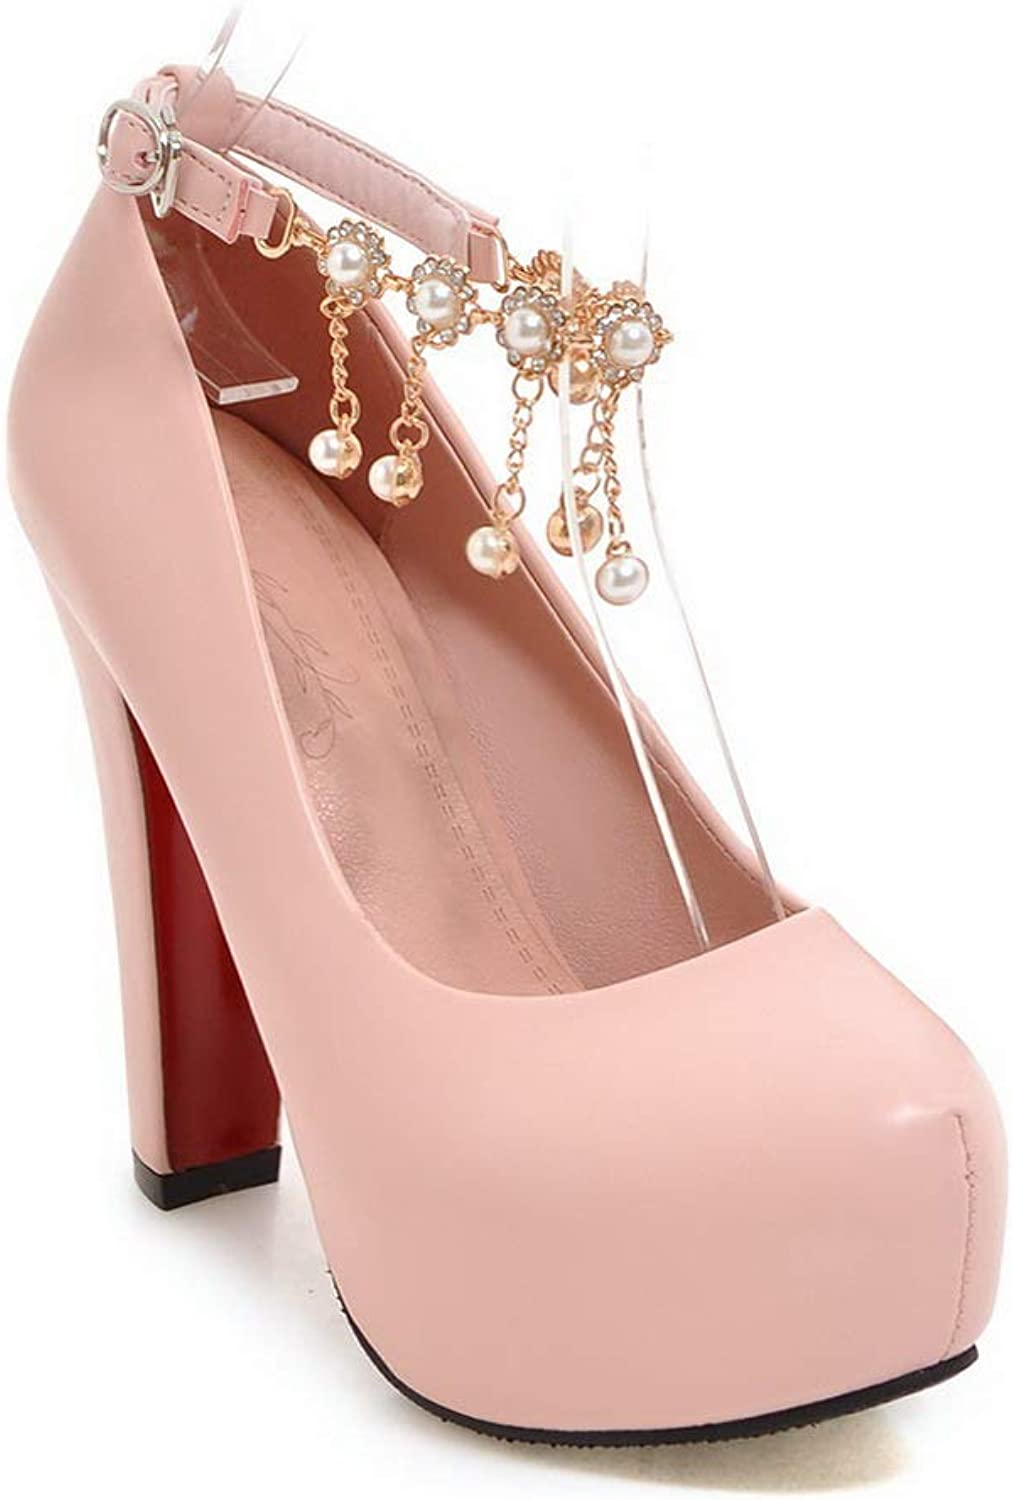 1TO9 Womens Beaded Solid Platform Urethane Pumps shoes MMS06293